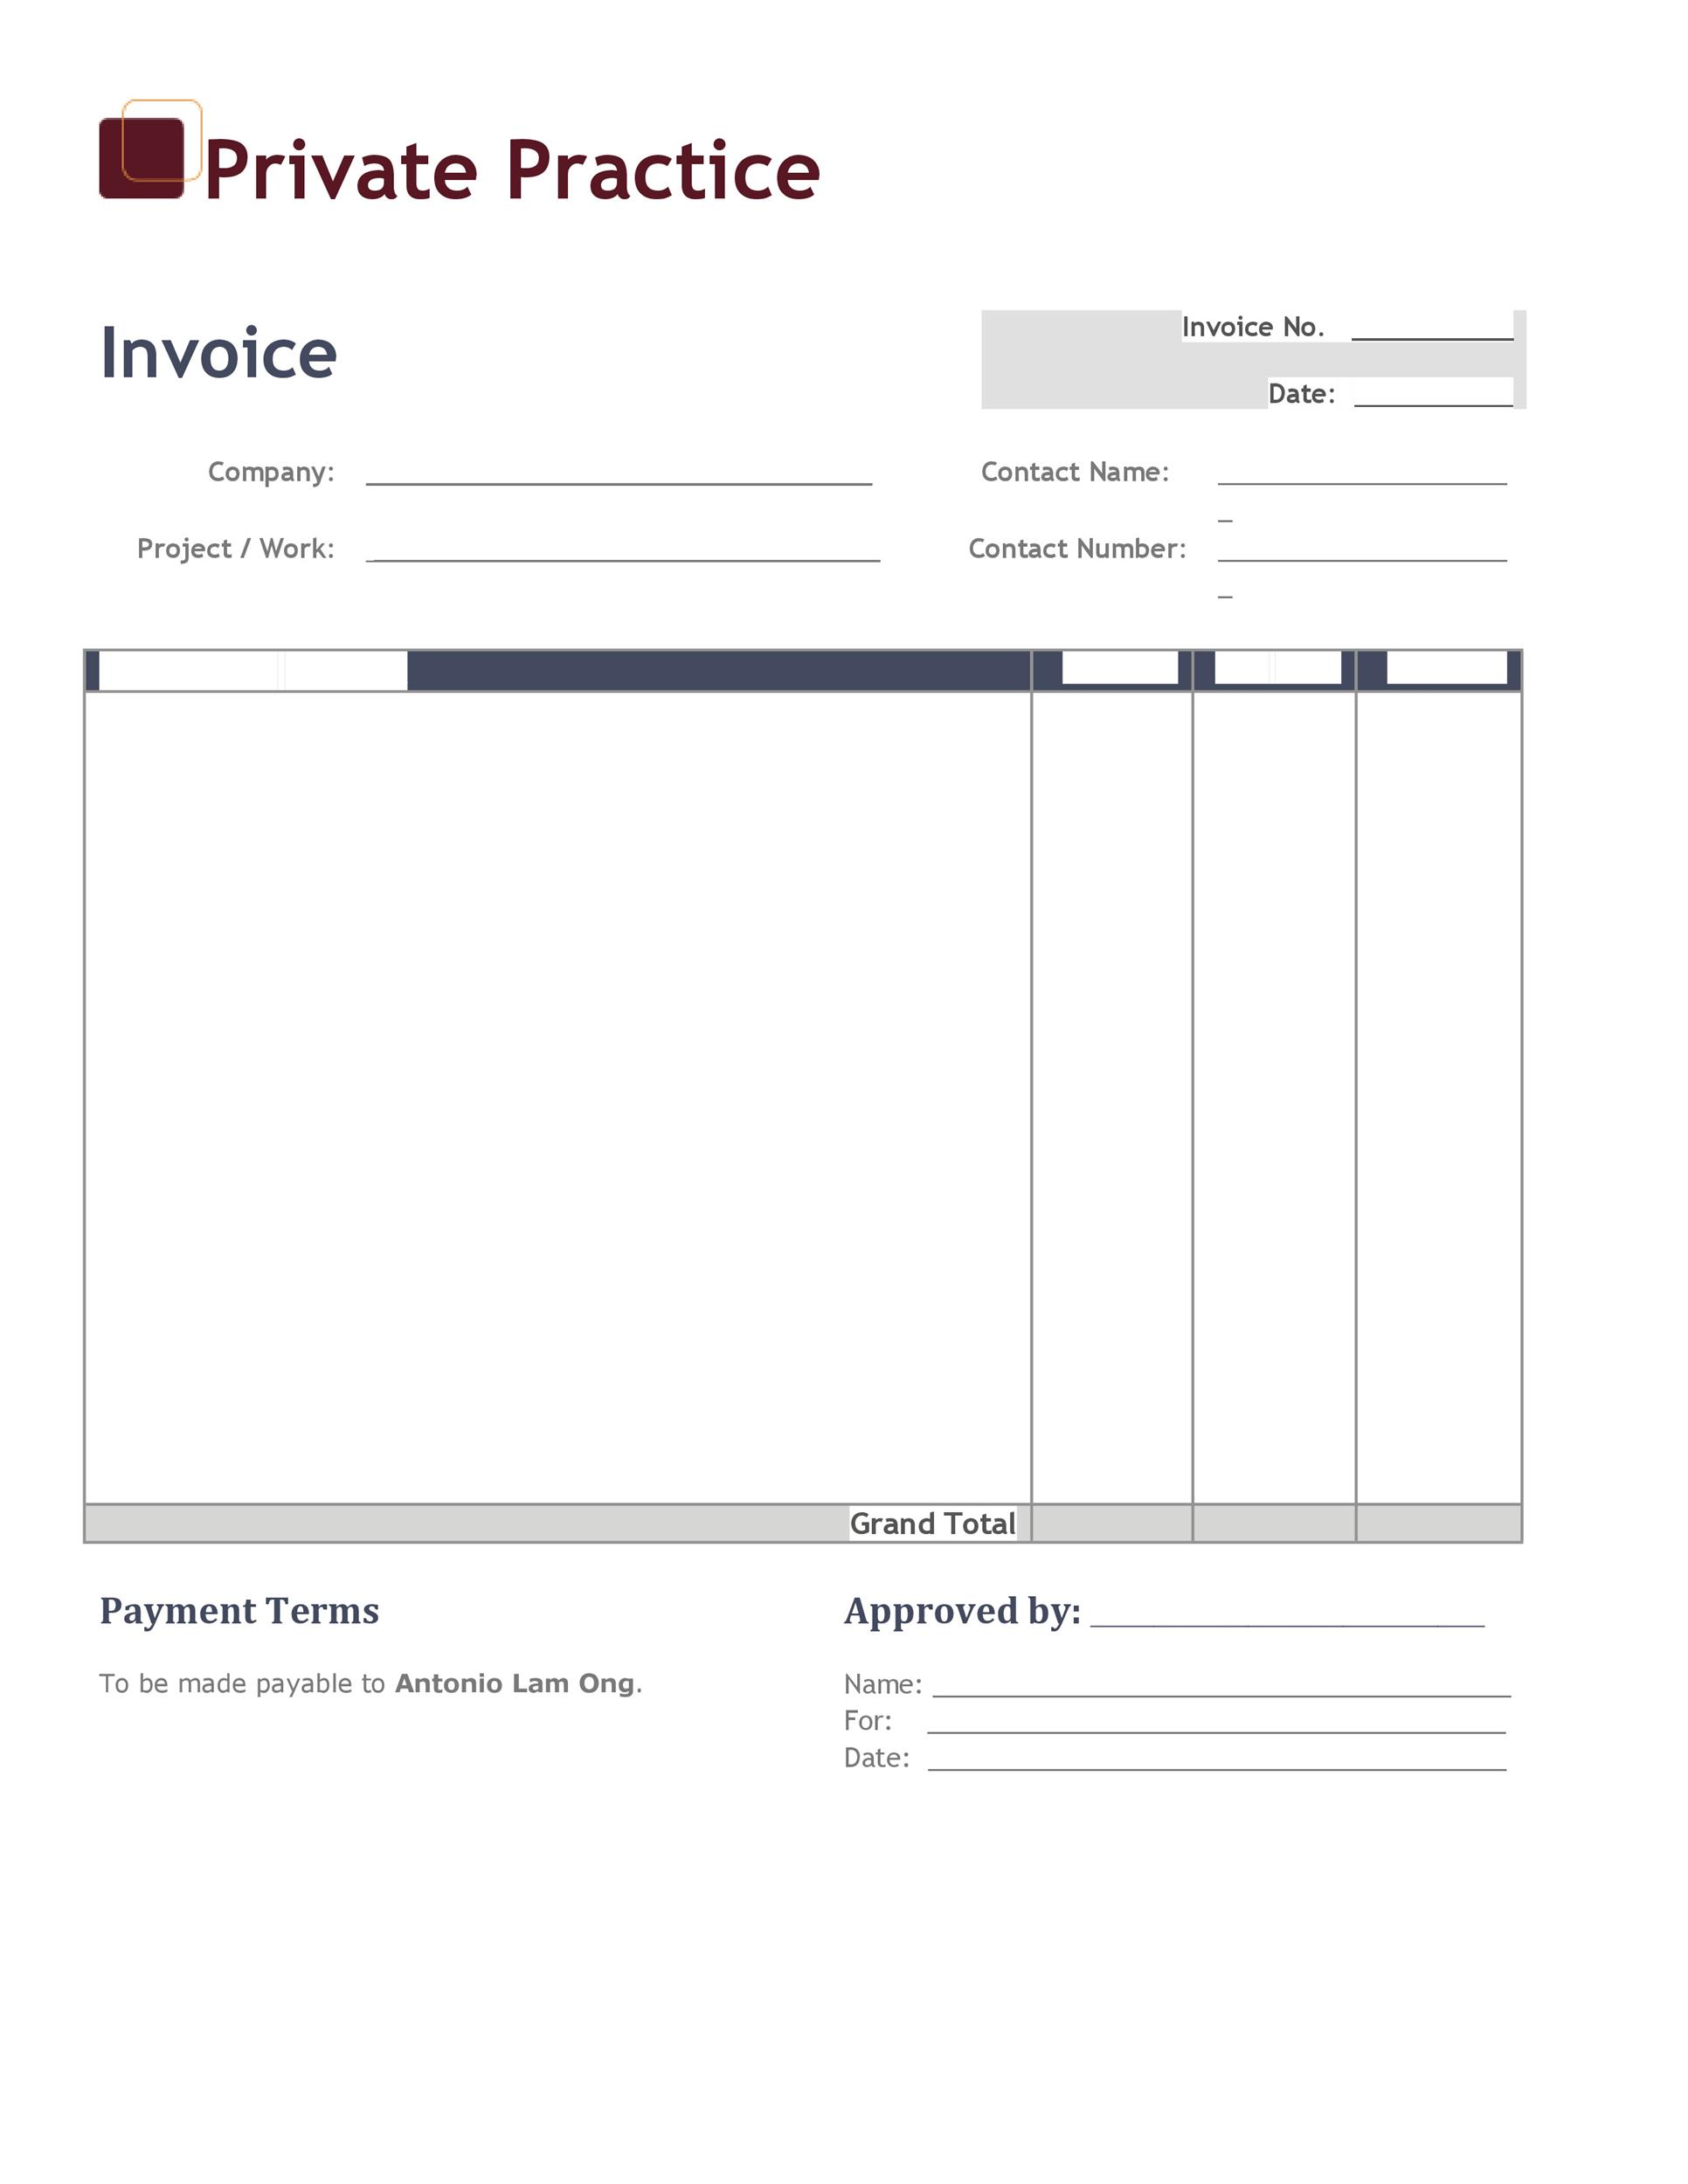 Printable Invoice Template 02  Copy Of A Blank Invoice